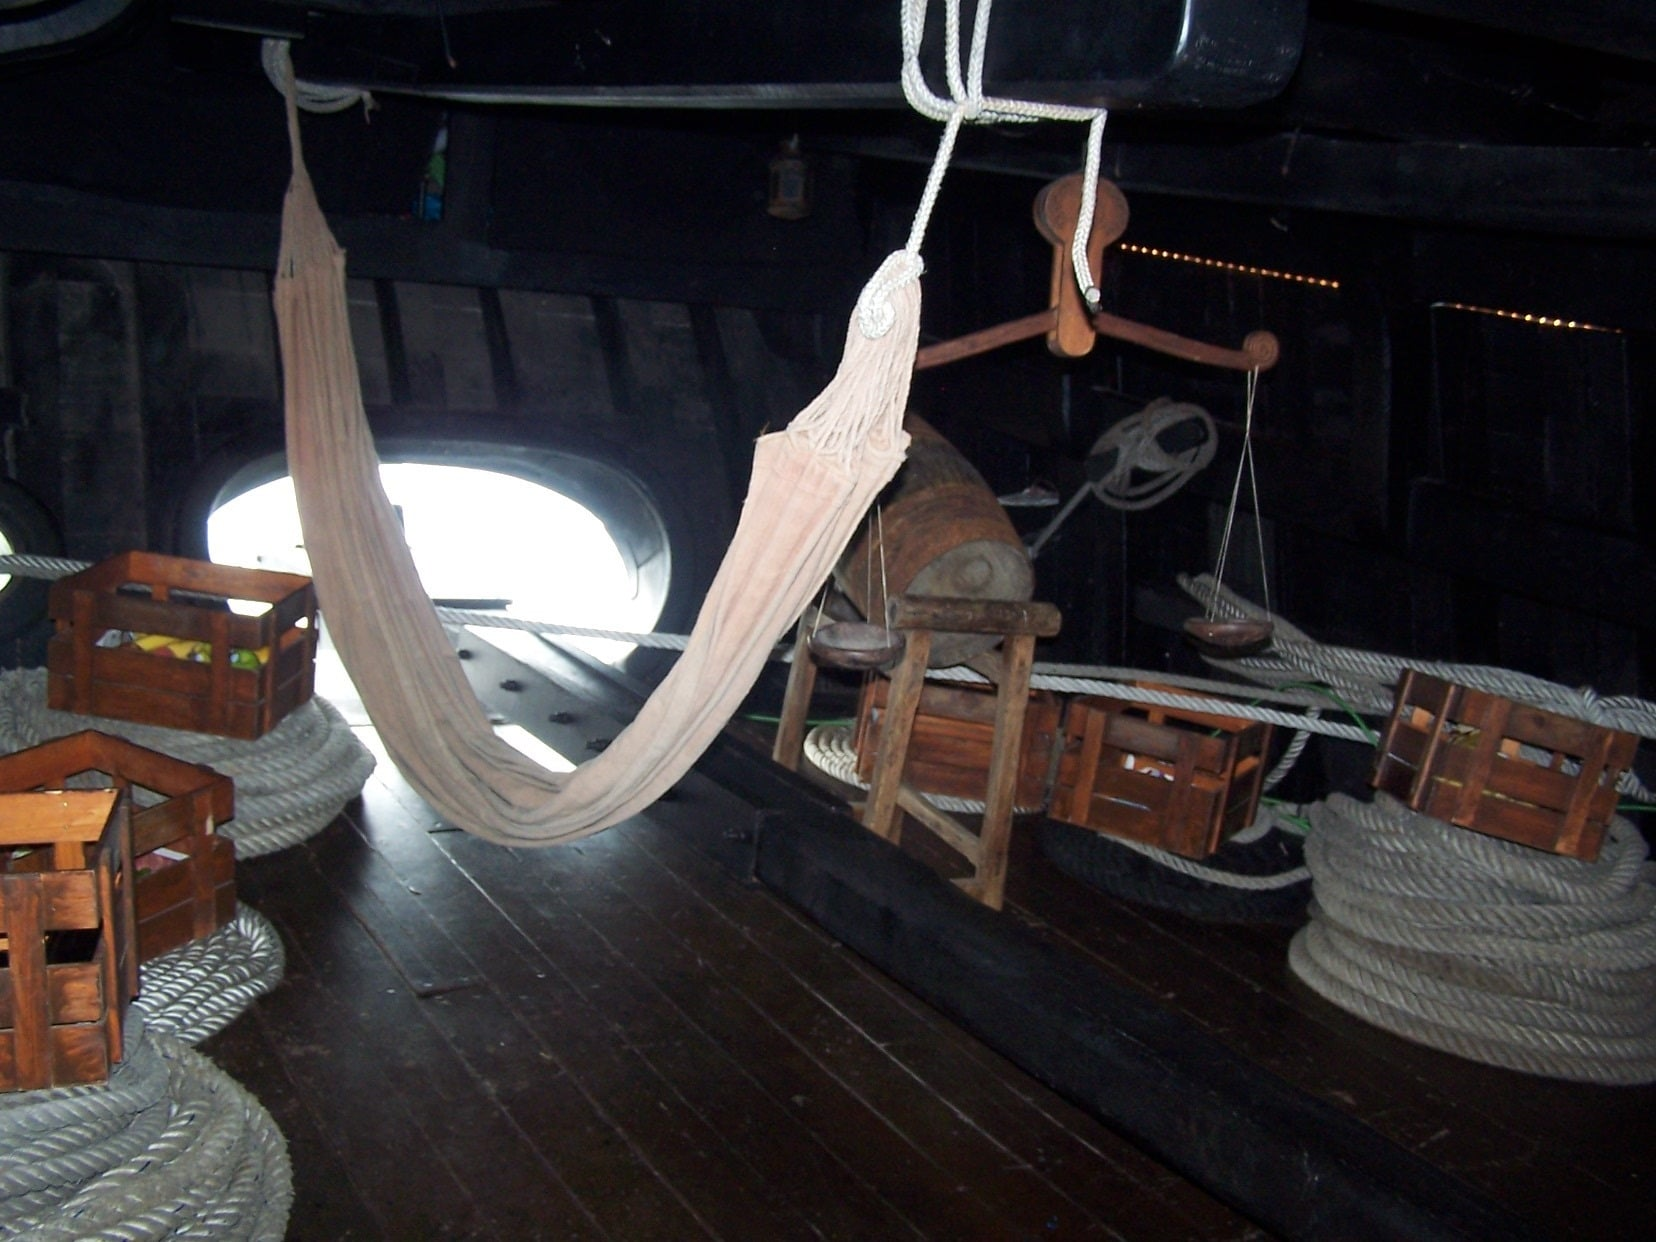 Ropes-Nao-Victoria Magellan 's ship patrick lemarie consulting